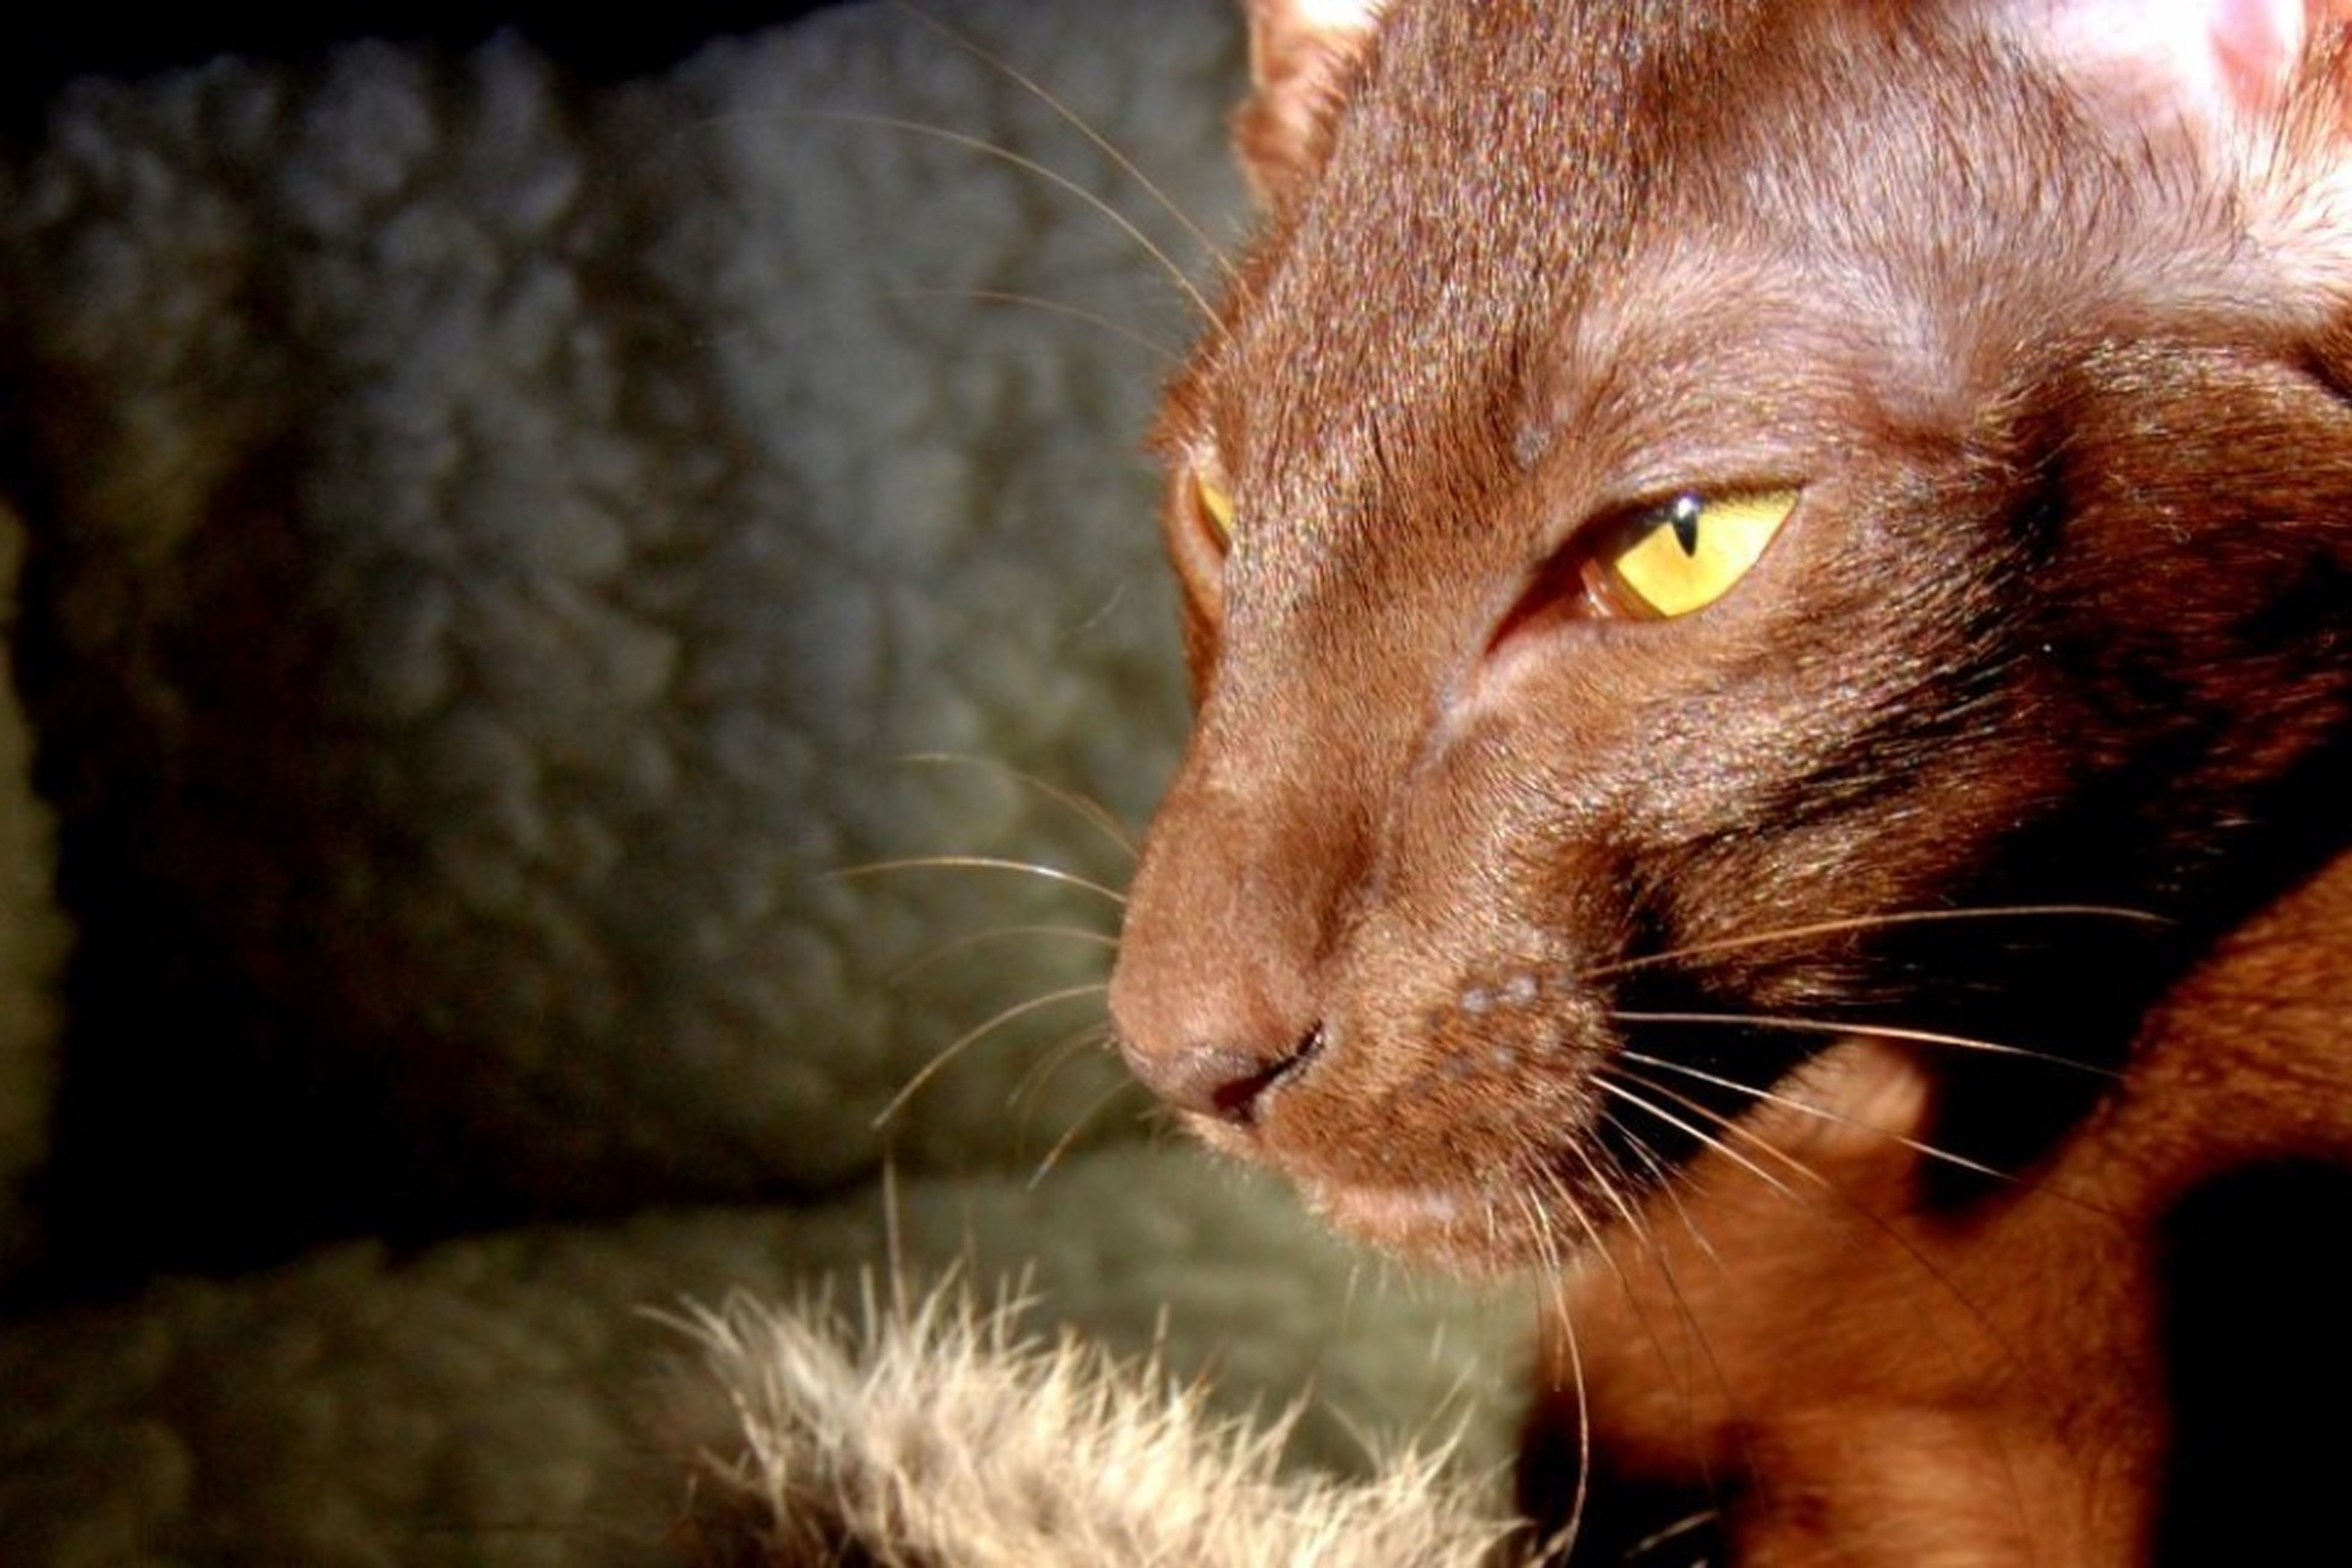 pets, one animal, animal themes, domestic animals, domestic cat, mammal, cat, feline, whisker, close-up, animal head, focus on foreground, selective focus, looking away, indoors, alertness, animal body part, no people, portrait, auto post production filter